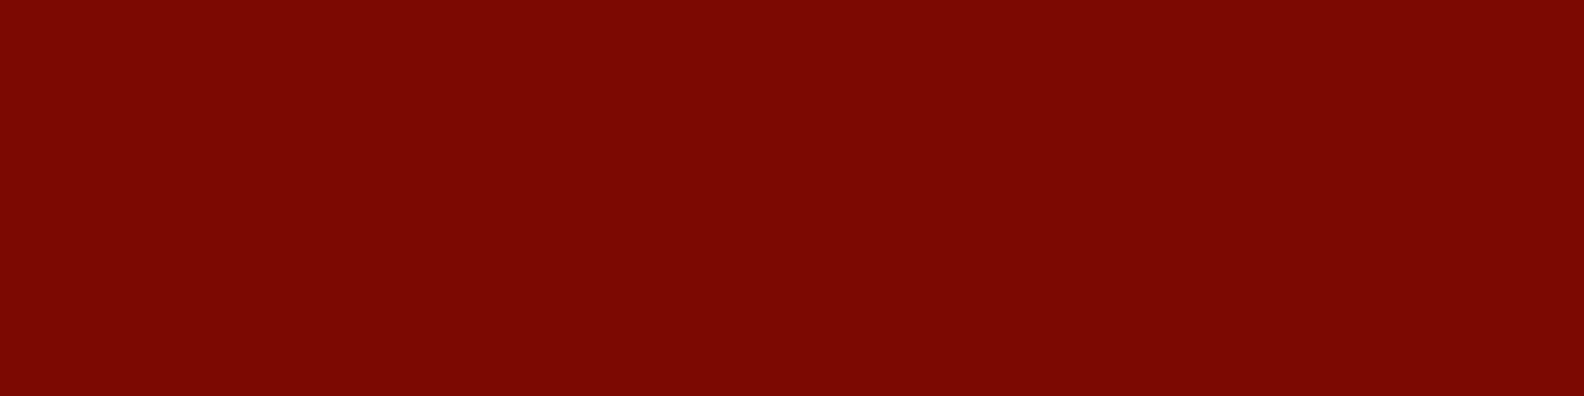 1584x396 Barn Red Solid Color Background